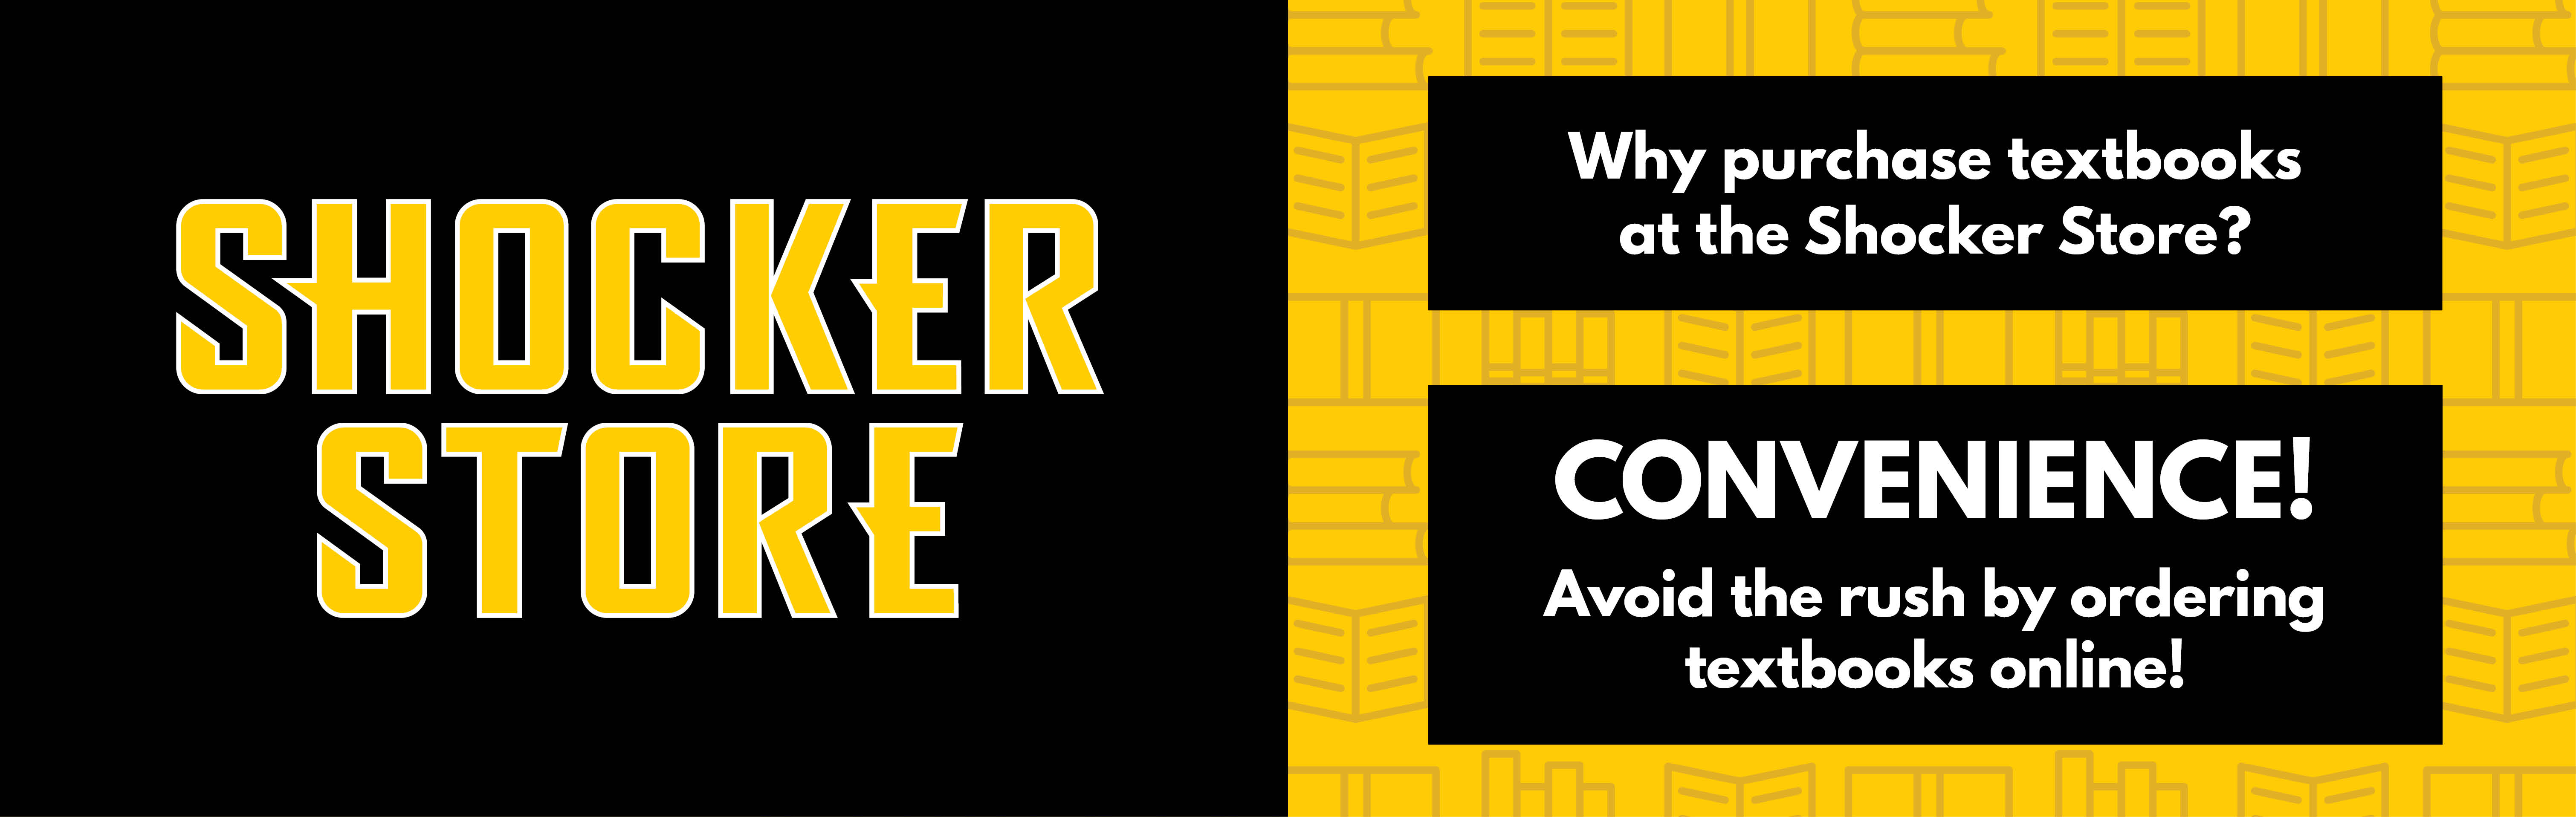 Why purchase textbooks at the Shocker Store? Convenience! Avoid the rush by ordering textbooks online.